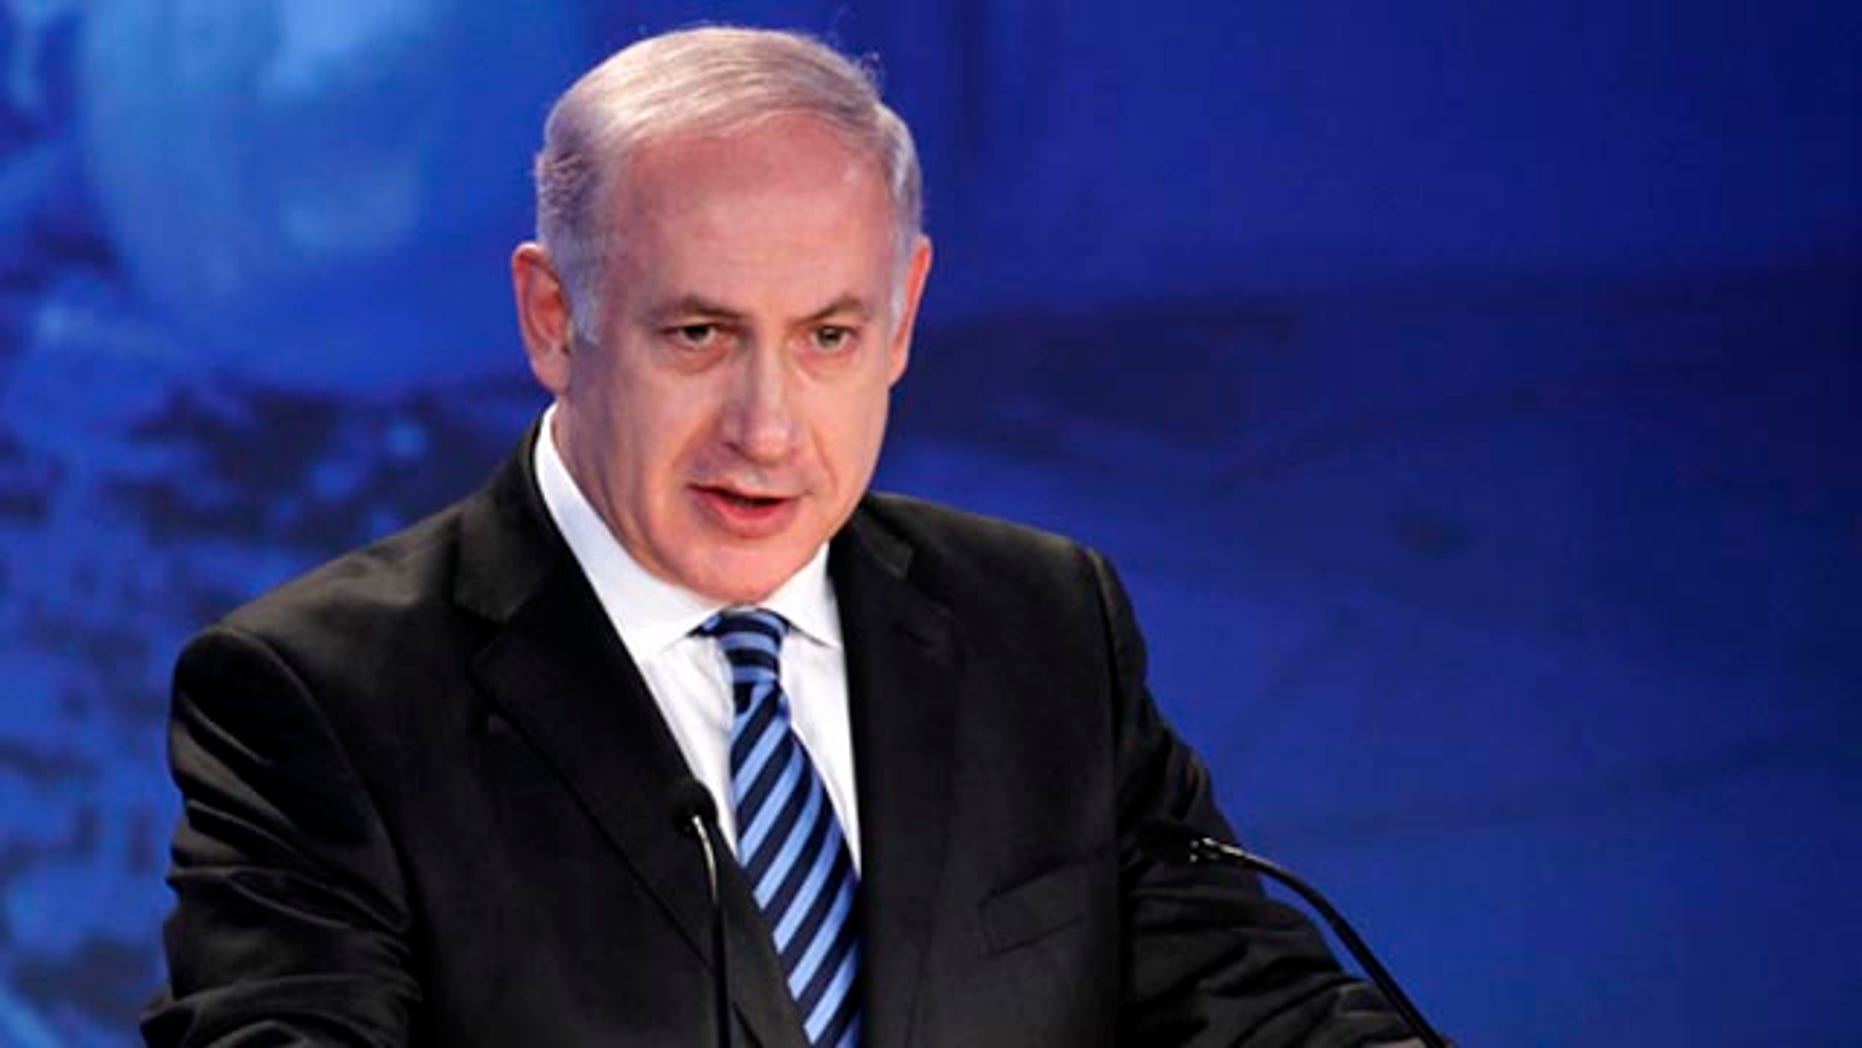 Israeli Prime Minister Benjamin Netanyahu, shown here at the annual General Assembly of the Jewish Federations of North America in New Orleans, defends construction in east Jerusalem.